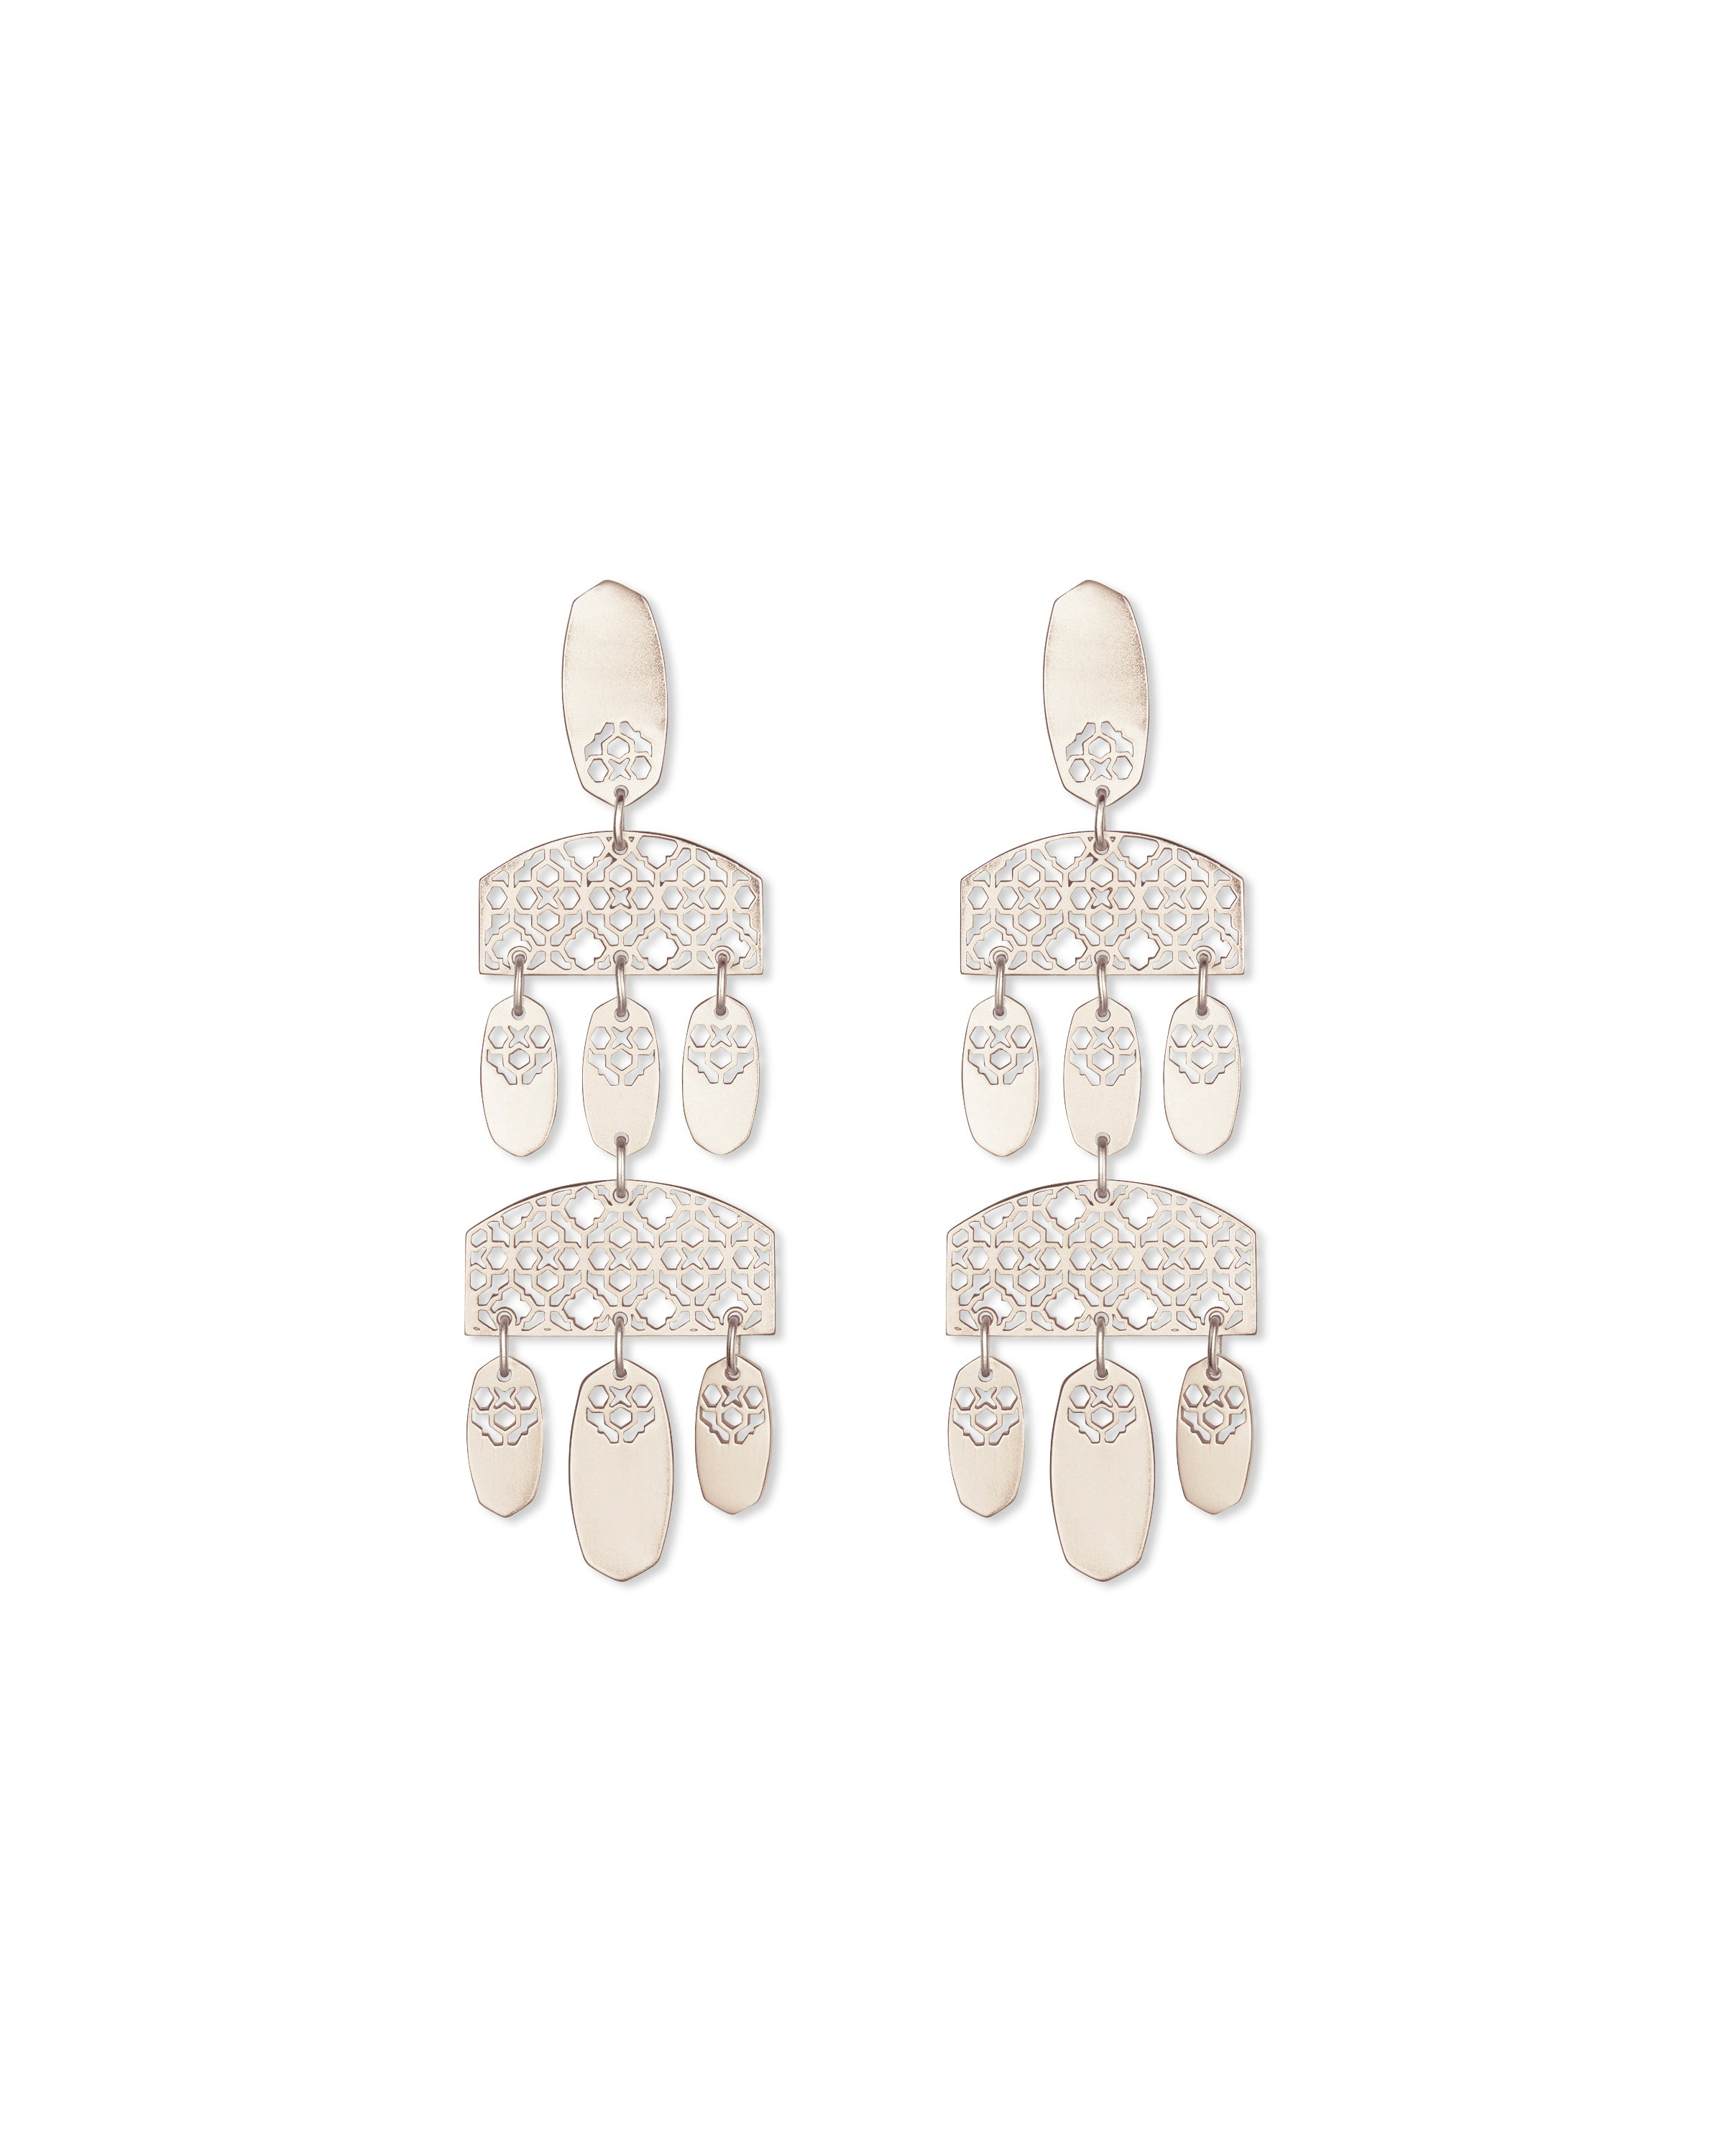 Kendra Scott Emmet Earring in Silver Filigree Metal